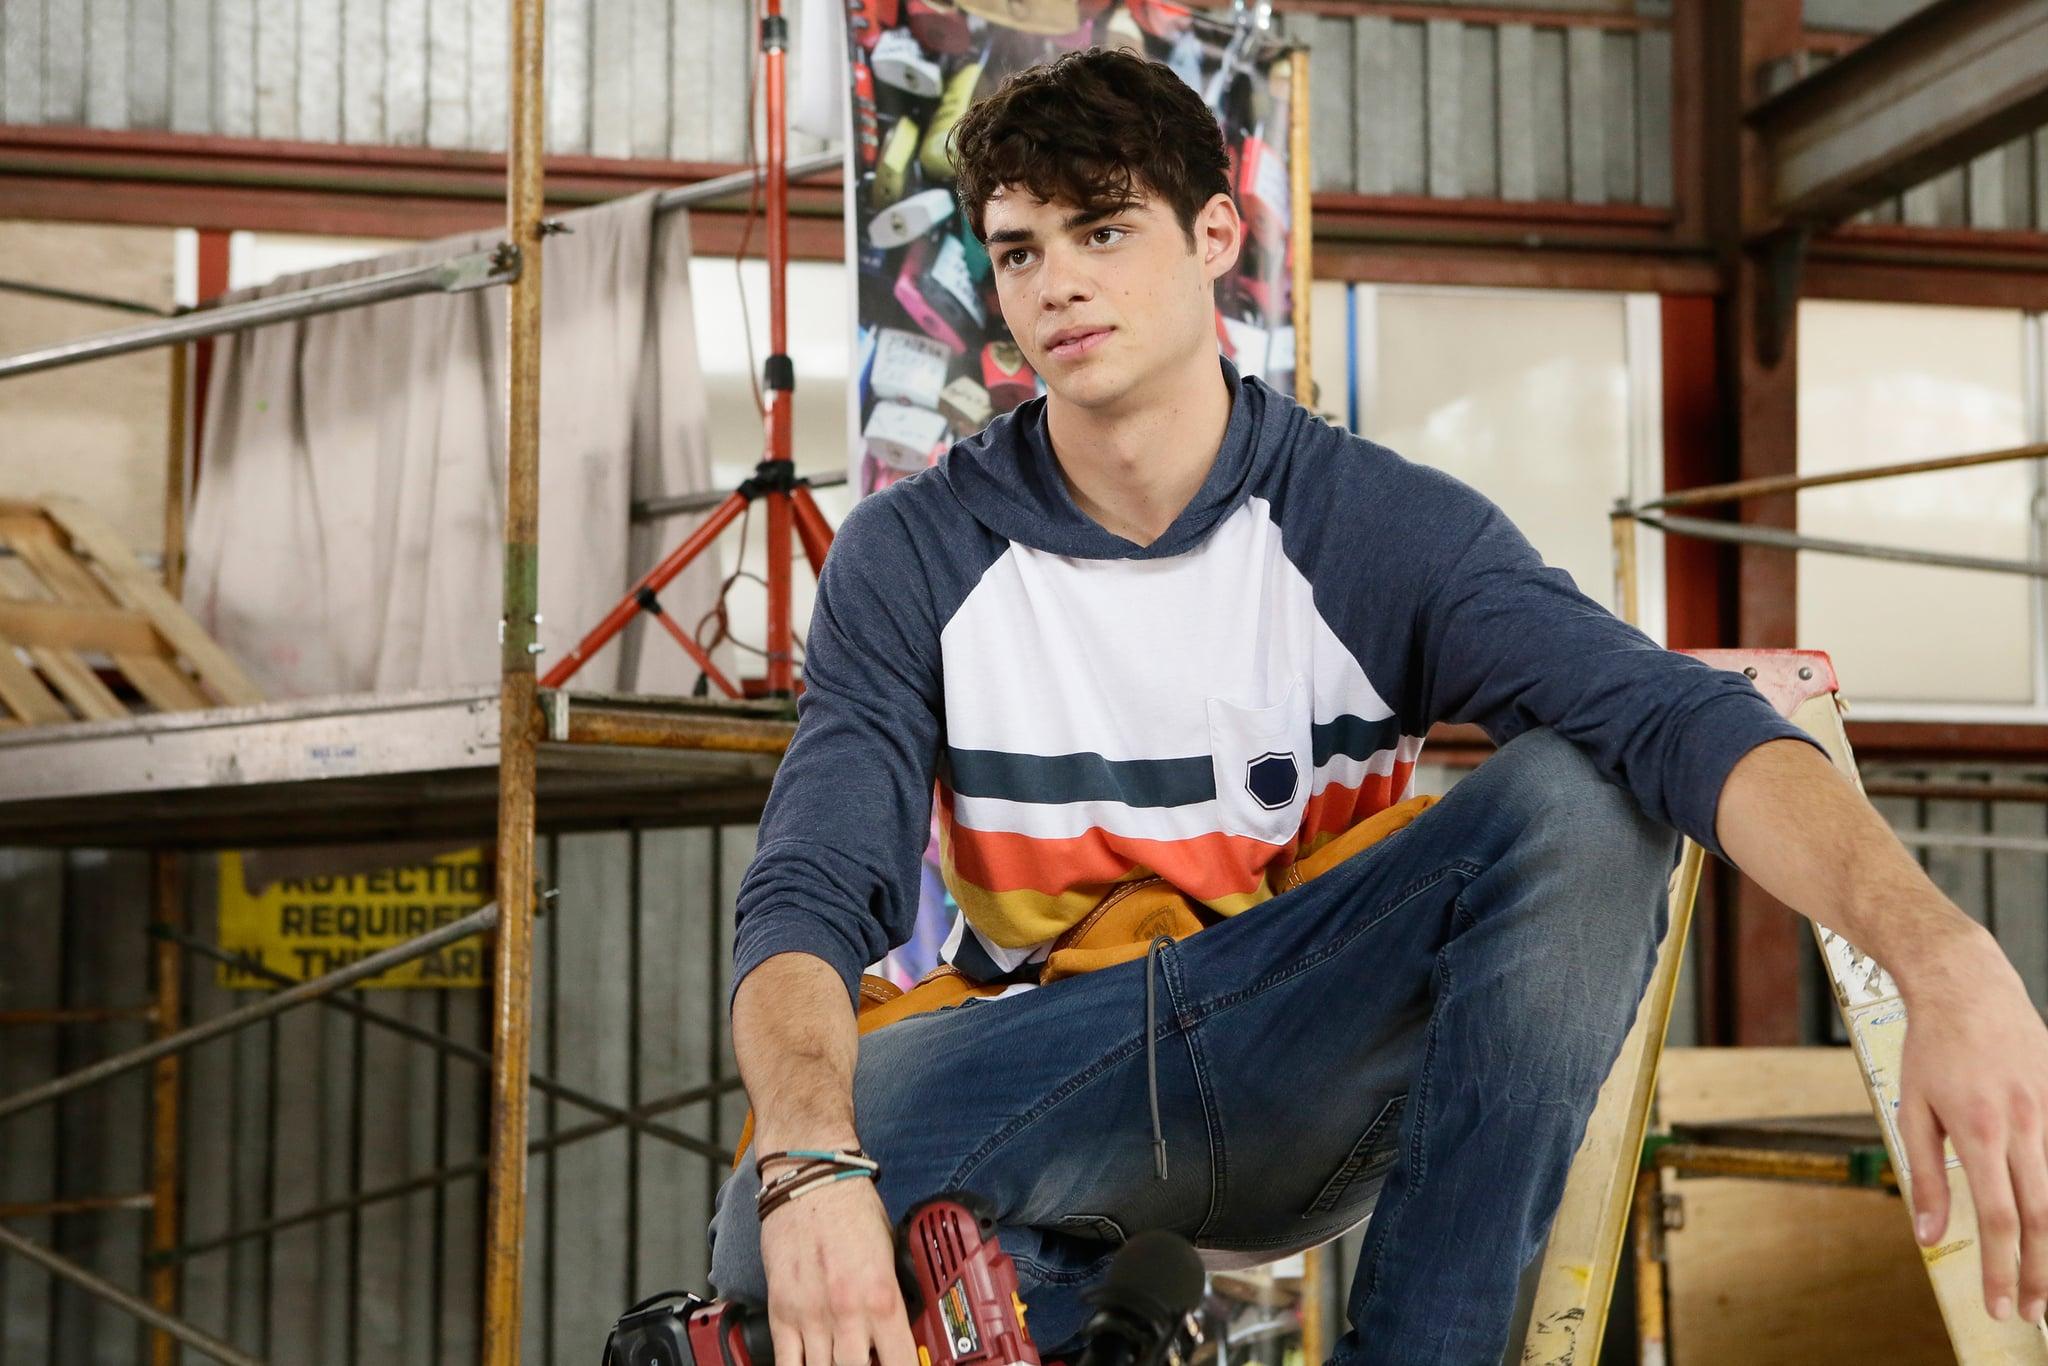 THE FOSTERS, Noah Centineo in 'Rehearsal' (Season 3, Episode 18, aired March 14, 2016). ph: Nicole Wilder/Freeform/courtesy Everett Collection